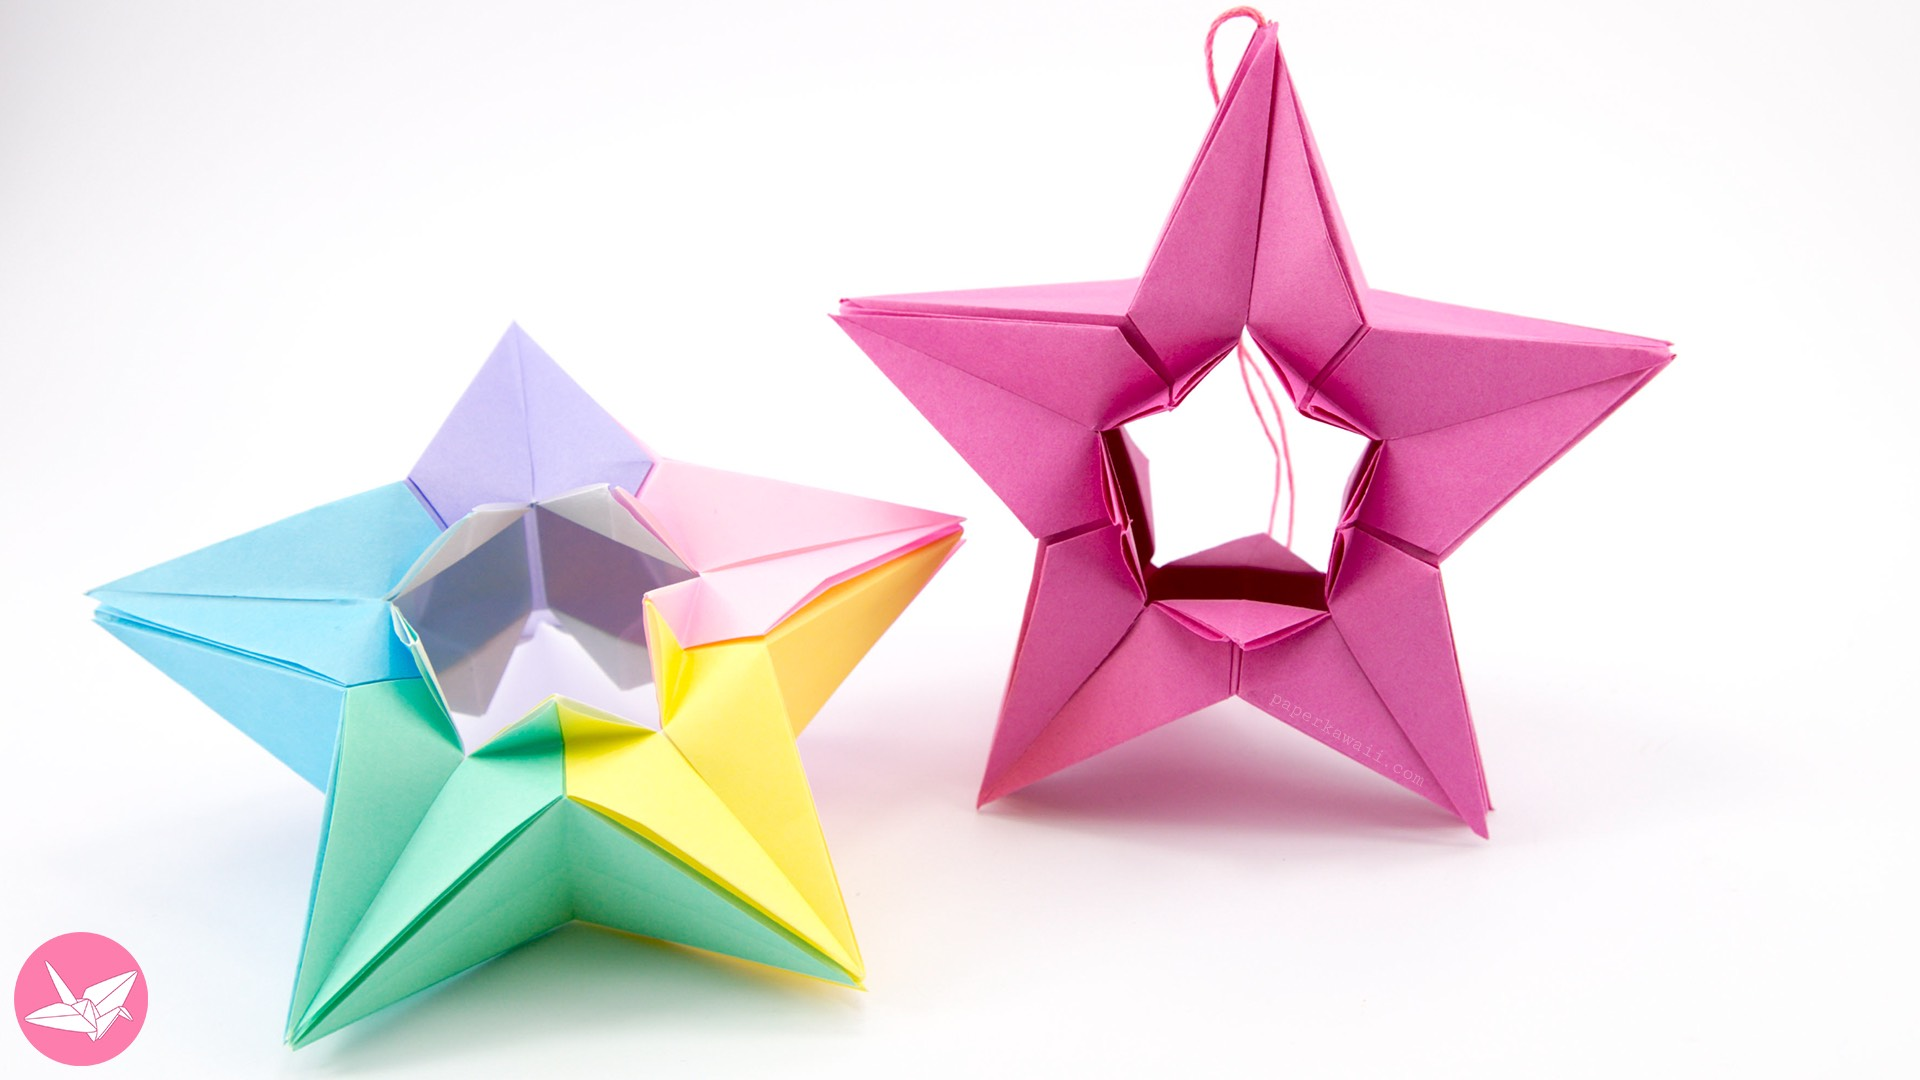 star flower origami diagram wiring of motorcycle alarm modular tutorial salman ebrahimi paper kawaii